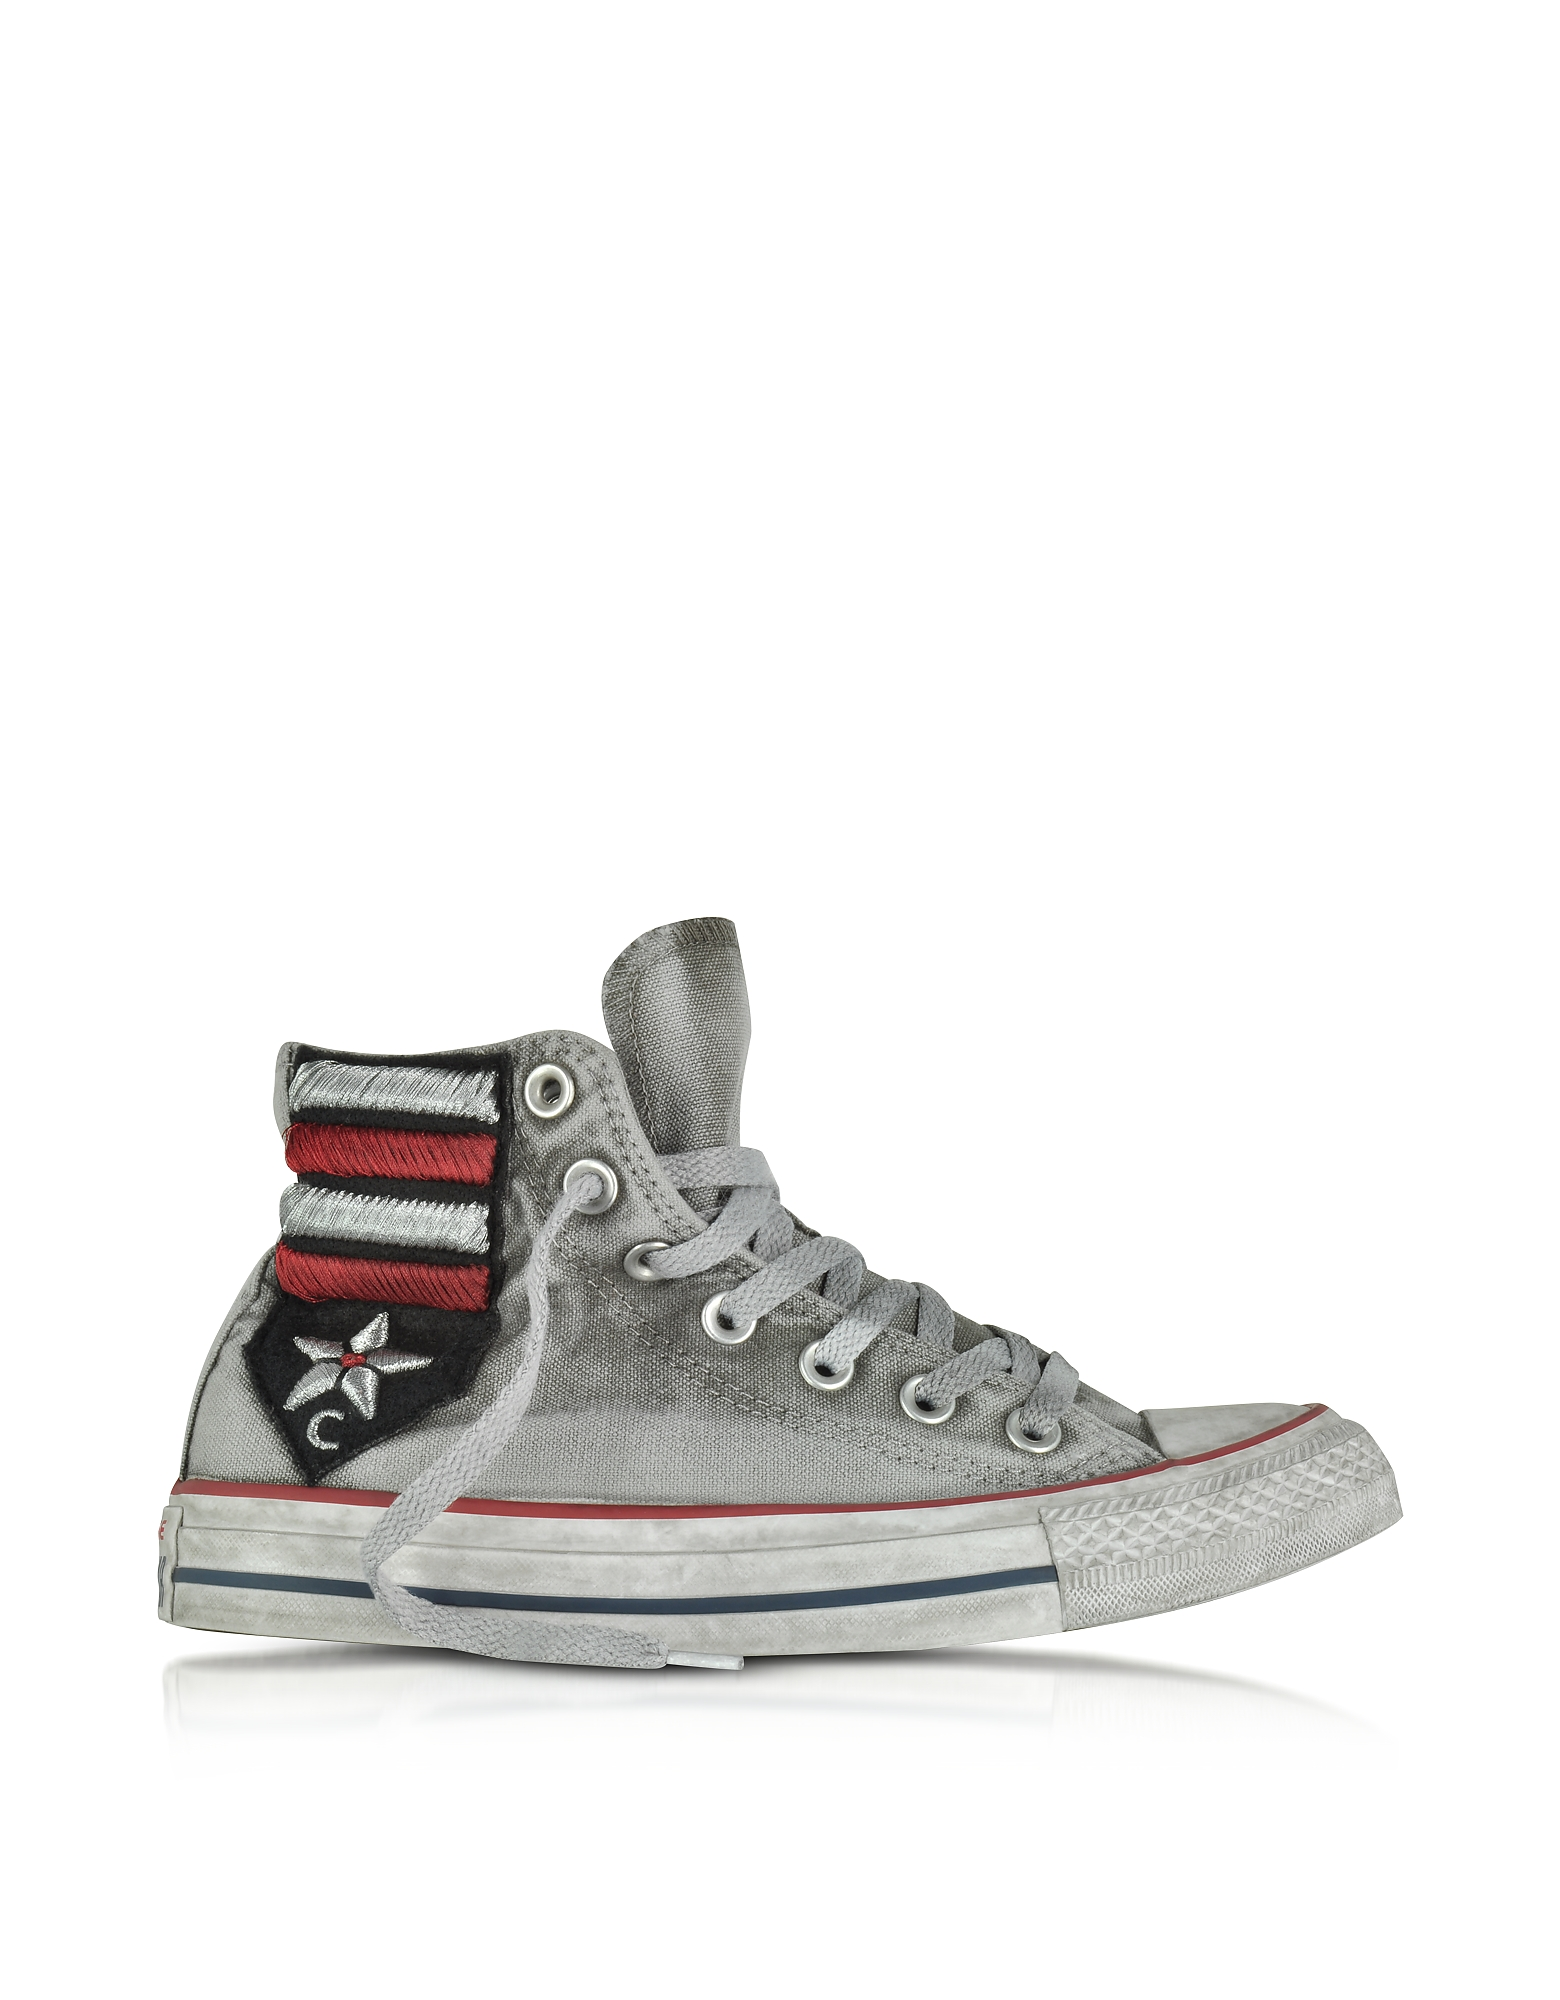 Converse Limited Edition Shoes, Chuck Taylor All Star High Vintage Flag Patchwork Canvas LTD Unisex